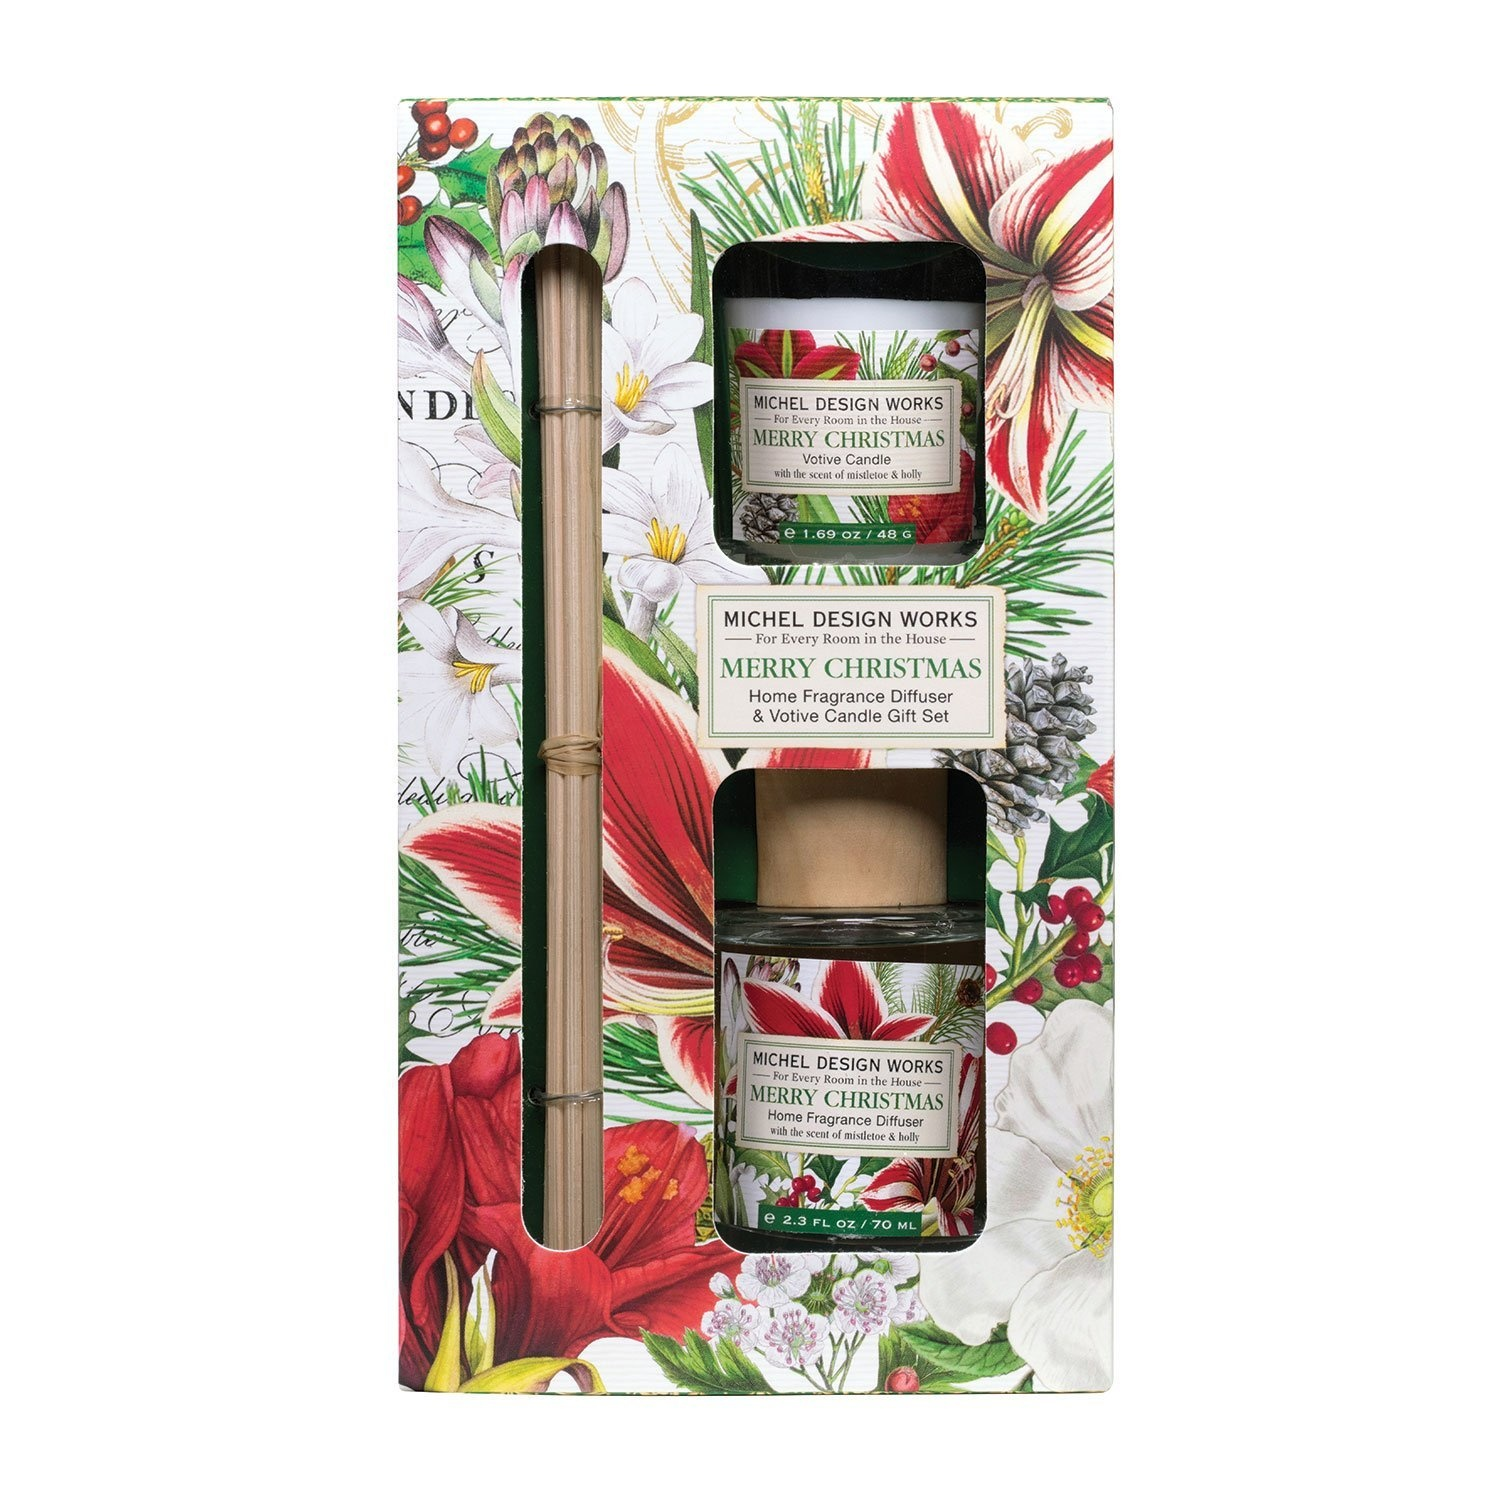 Merry Christmas - Diffuser & Votive Candle Set